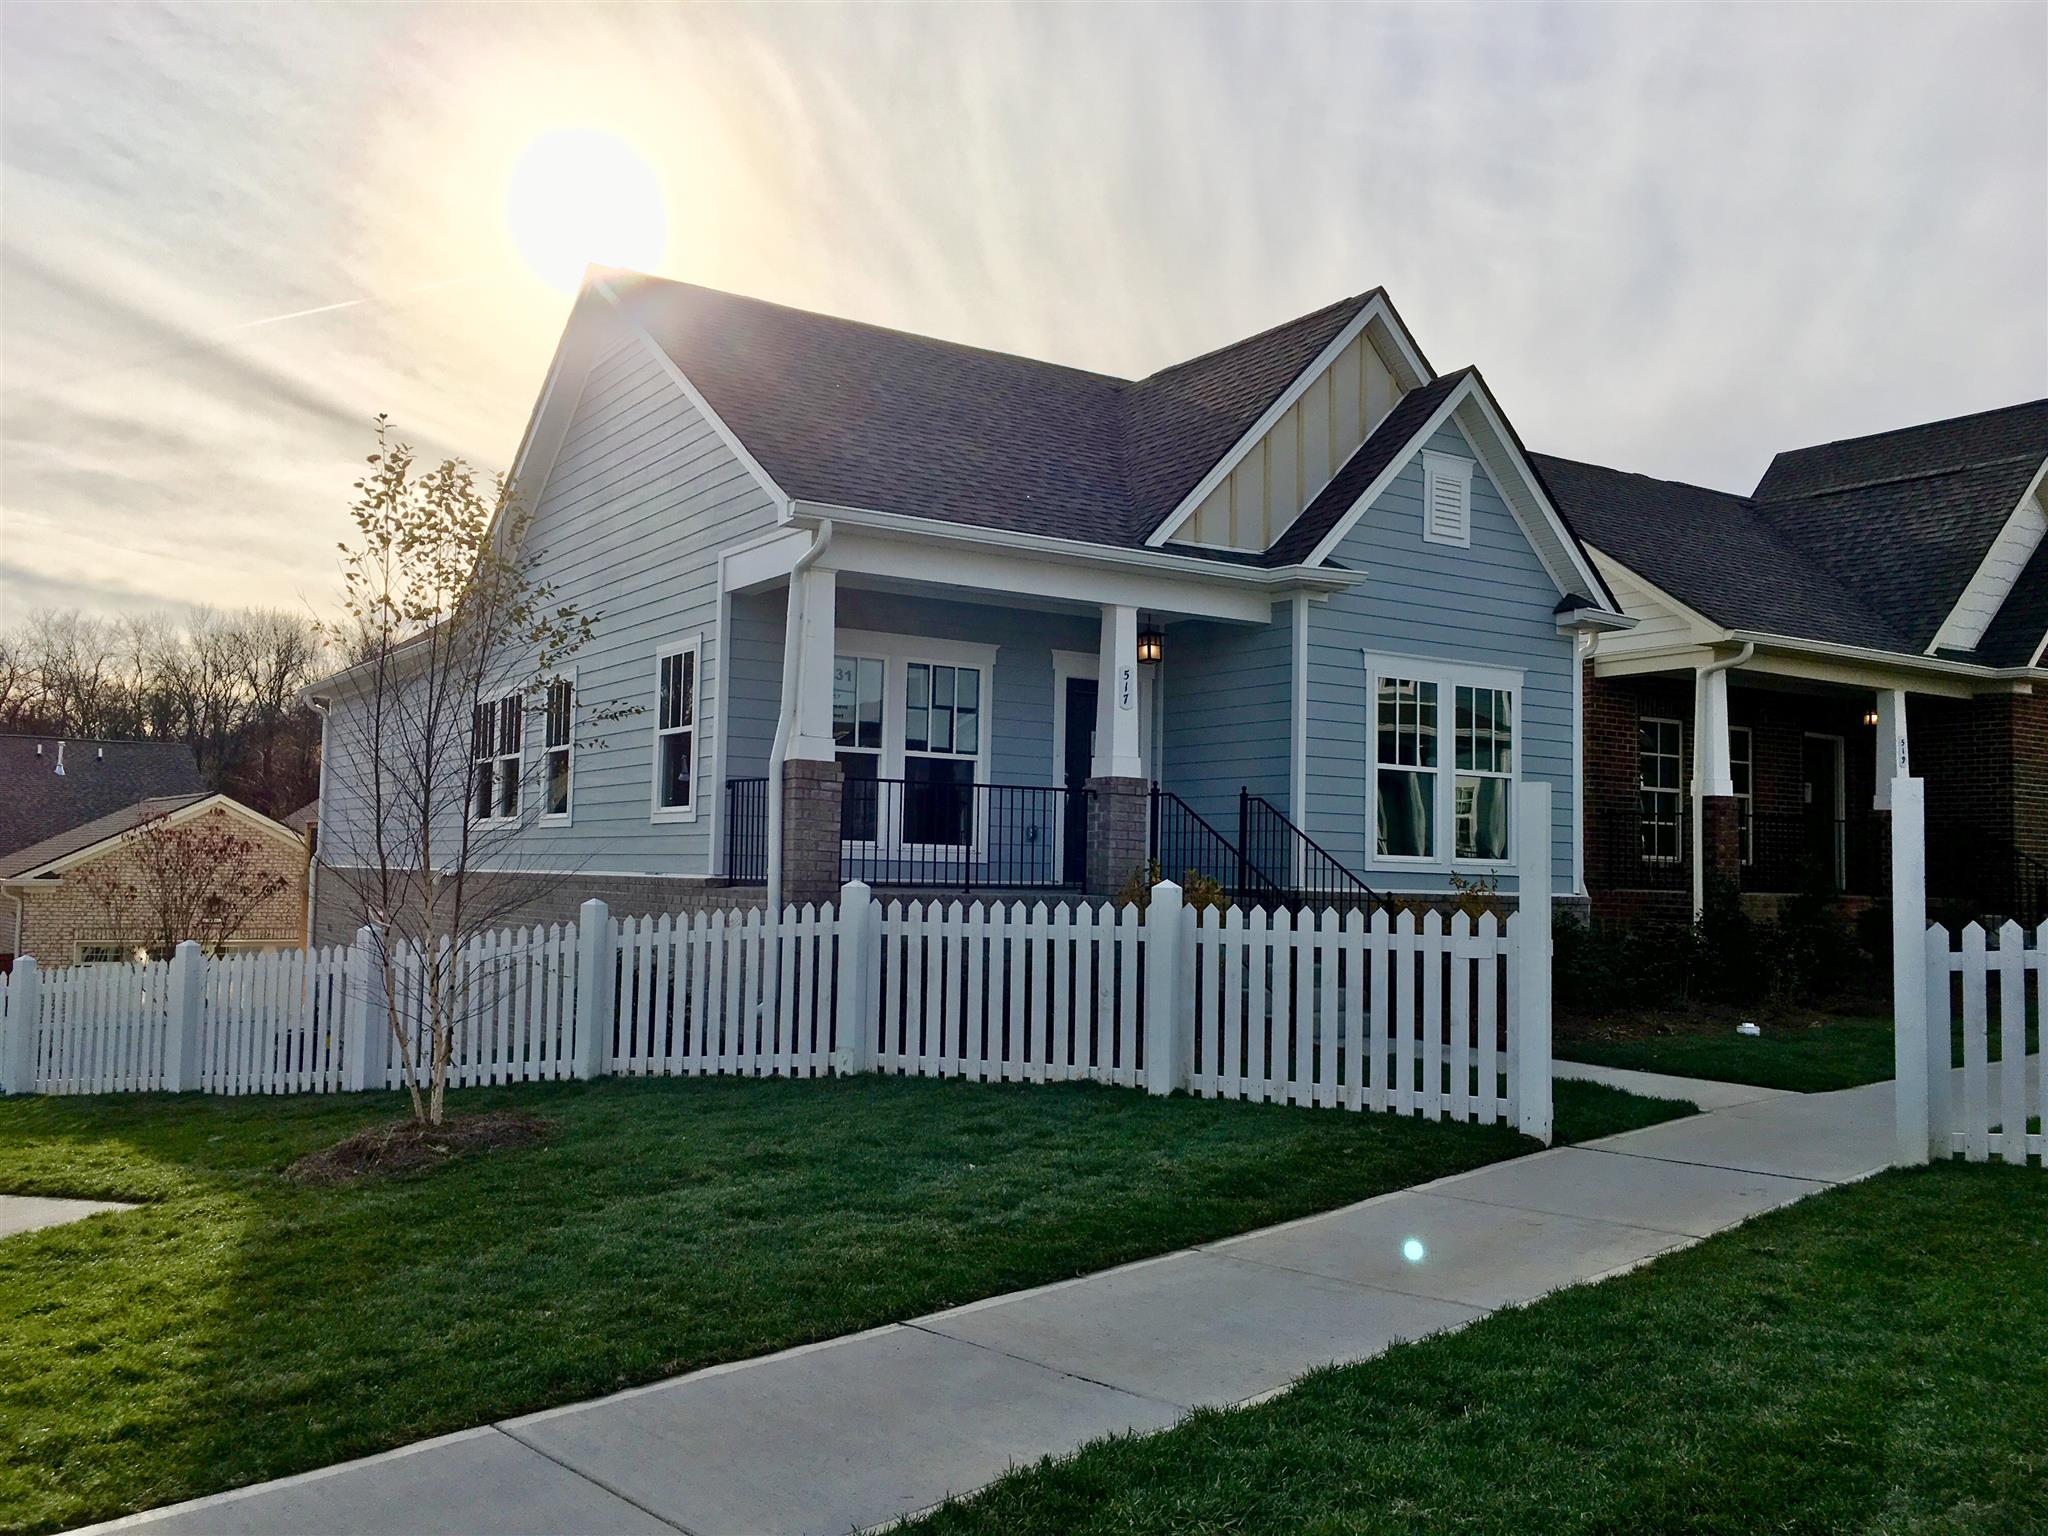 517 Pleasant Street #131, Nolensville in Davidson County County, TN 37135 Home for Sale